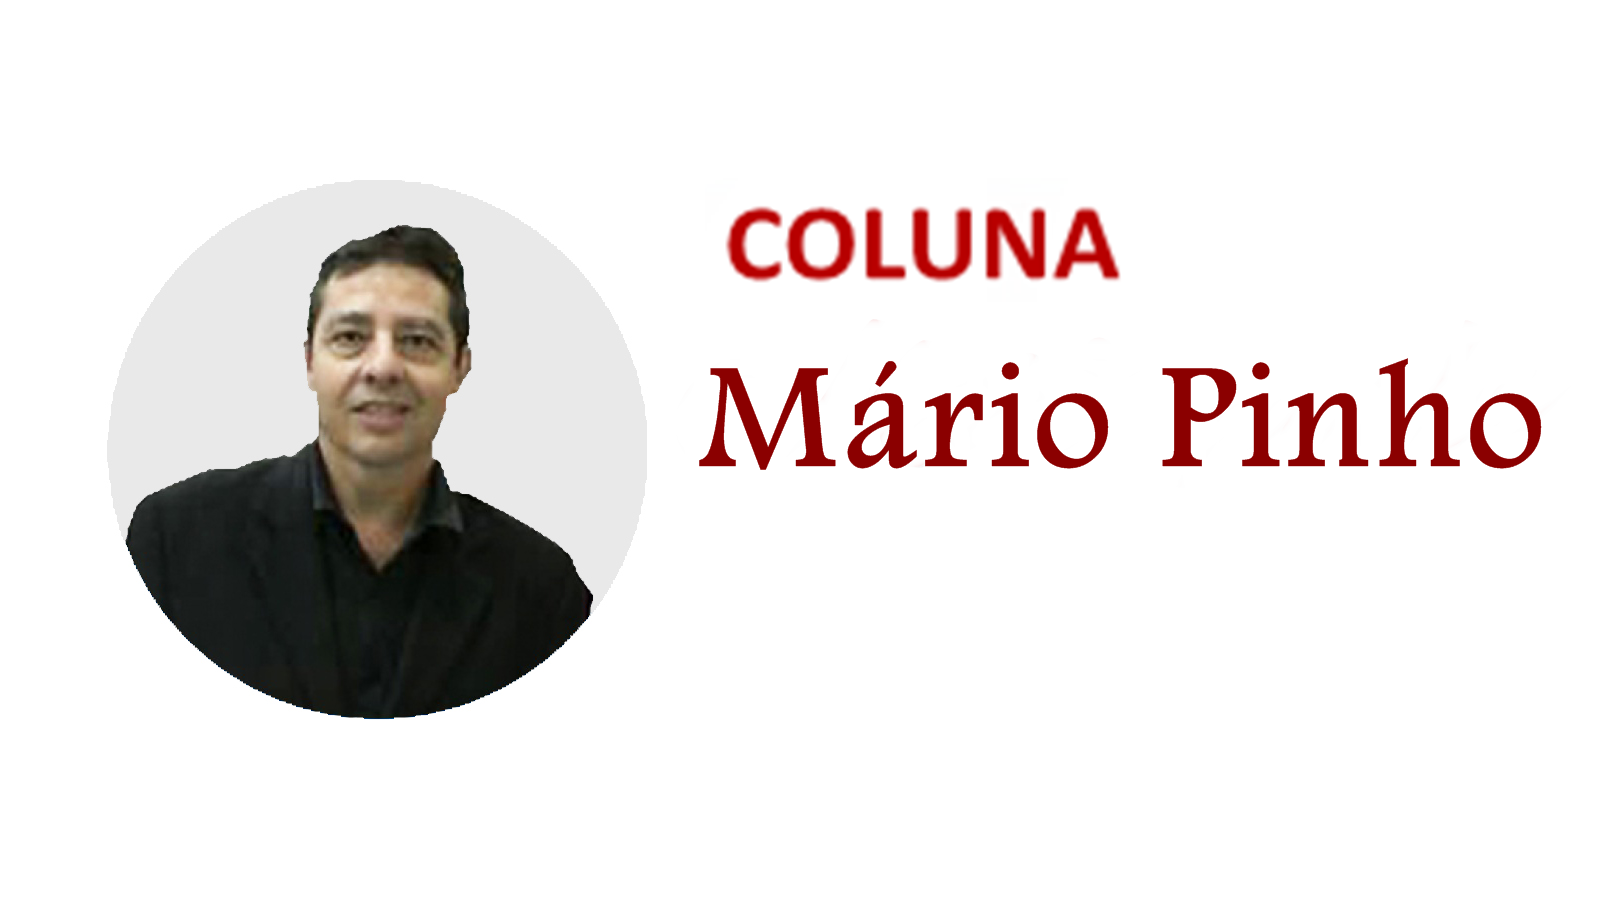 Coluna Mario Pinho